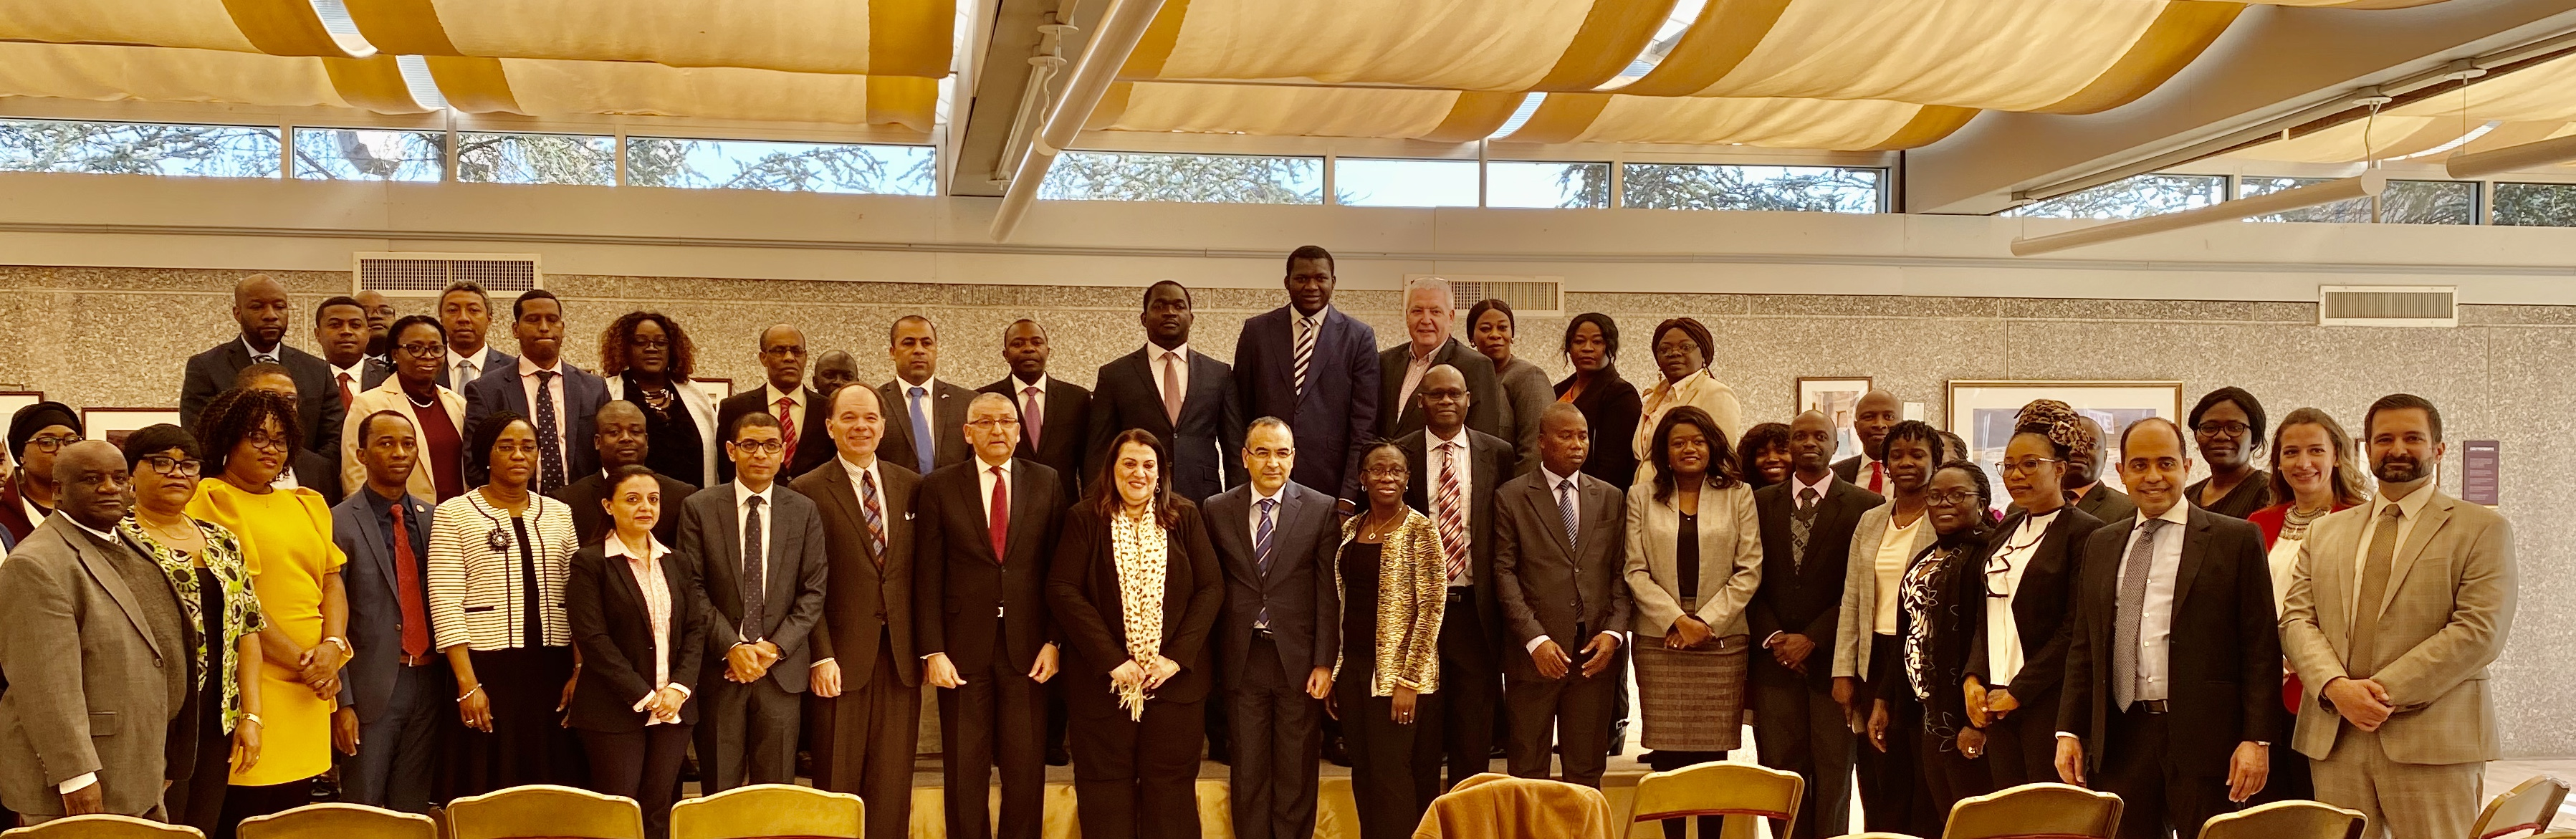 IBDL launches The Capacity Building Program for African Diplomats in Washington D.C